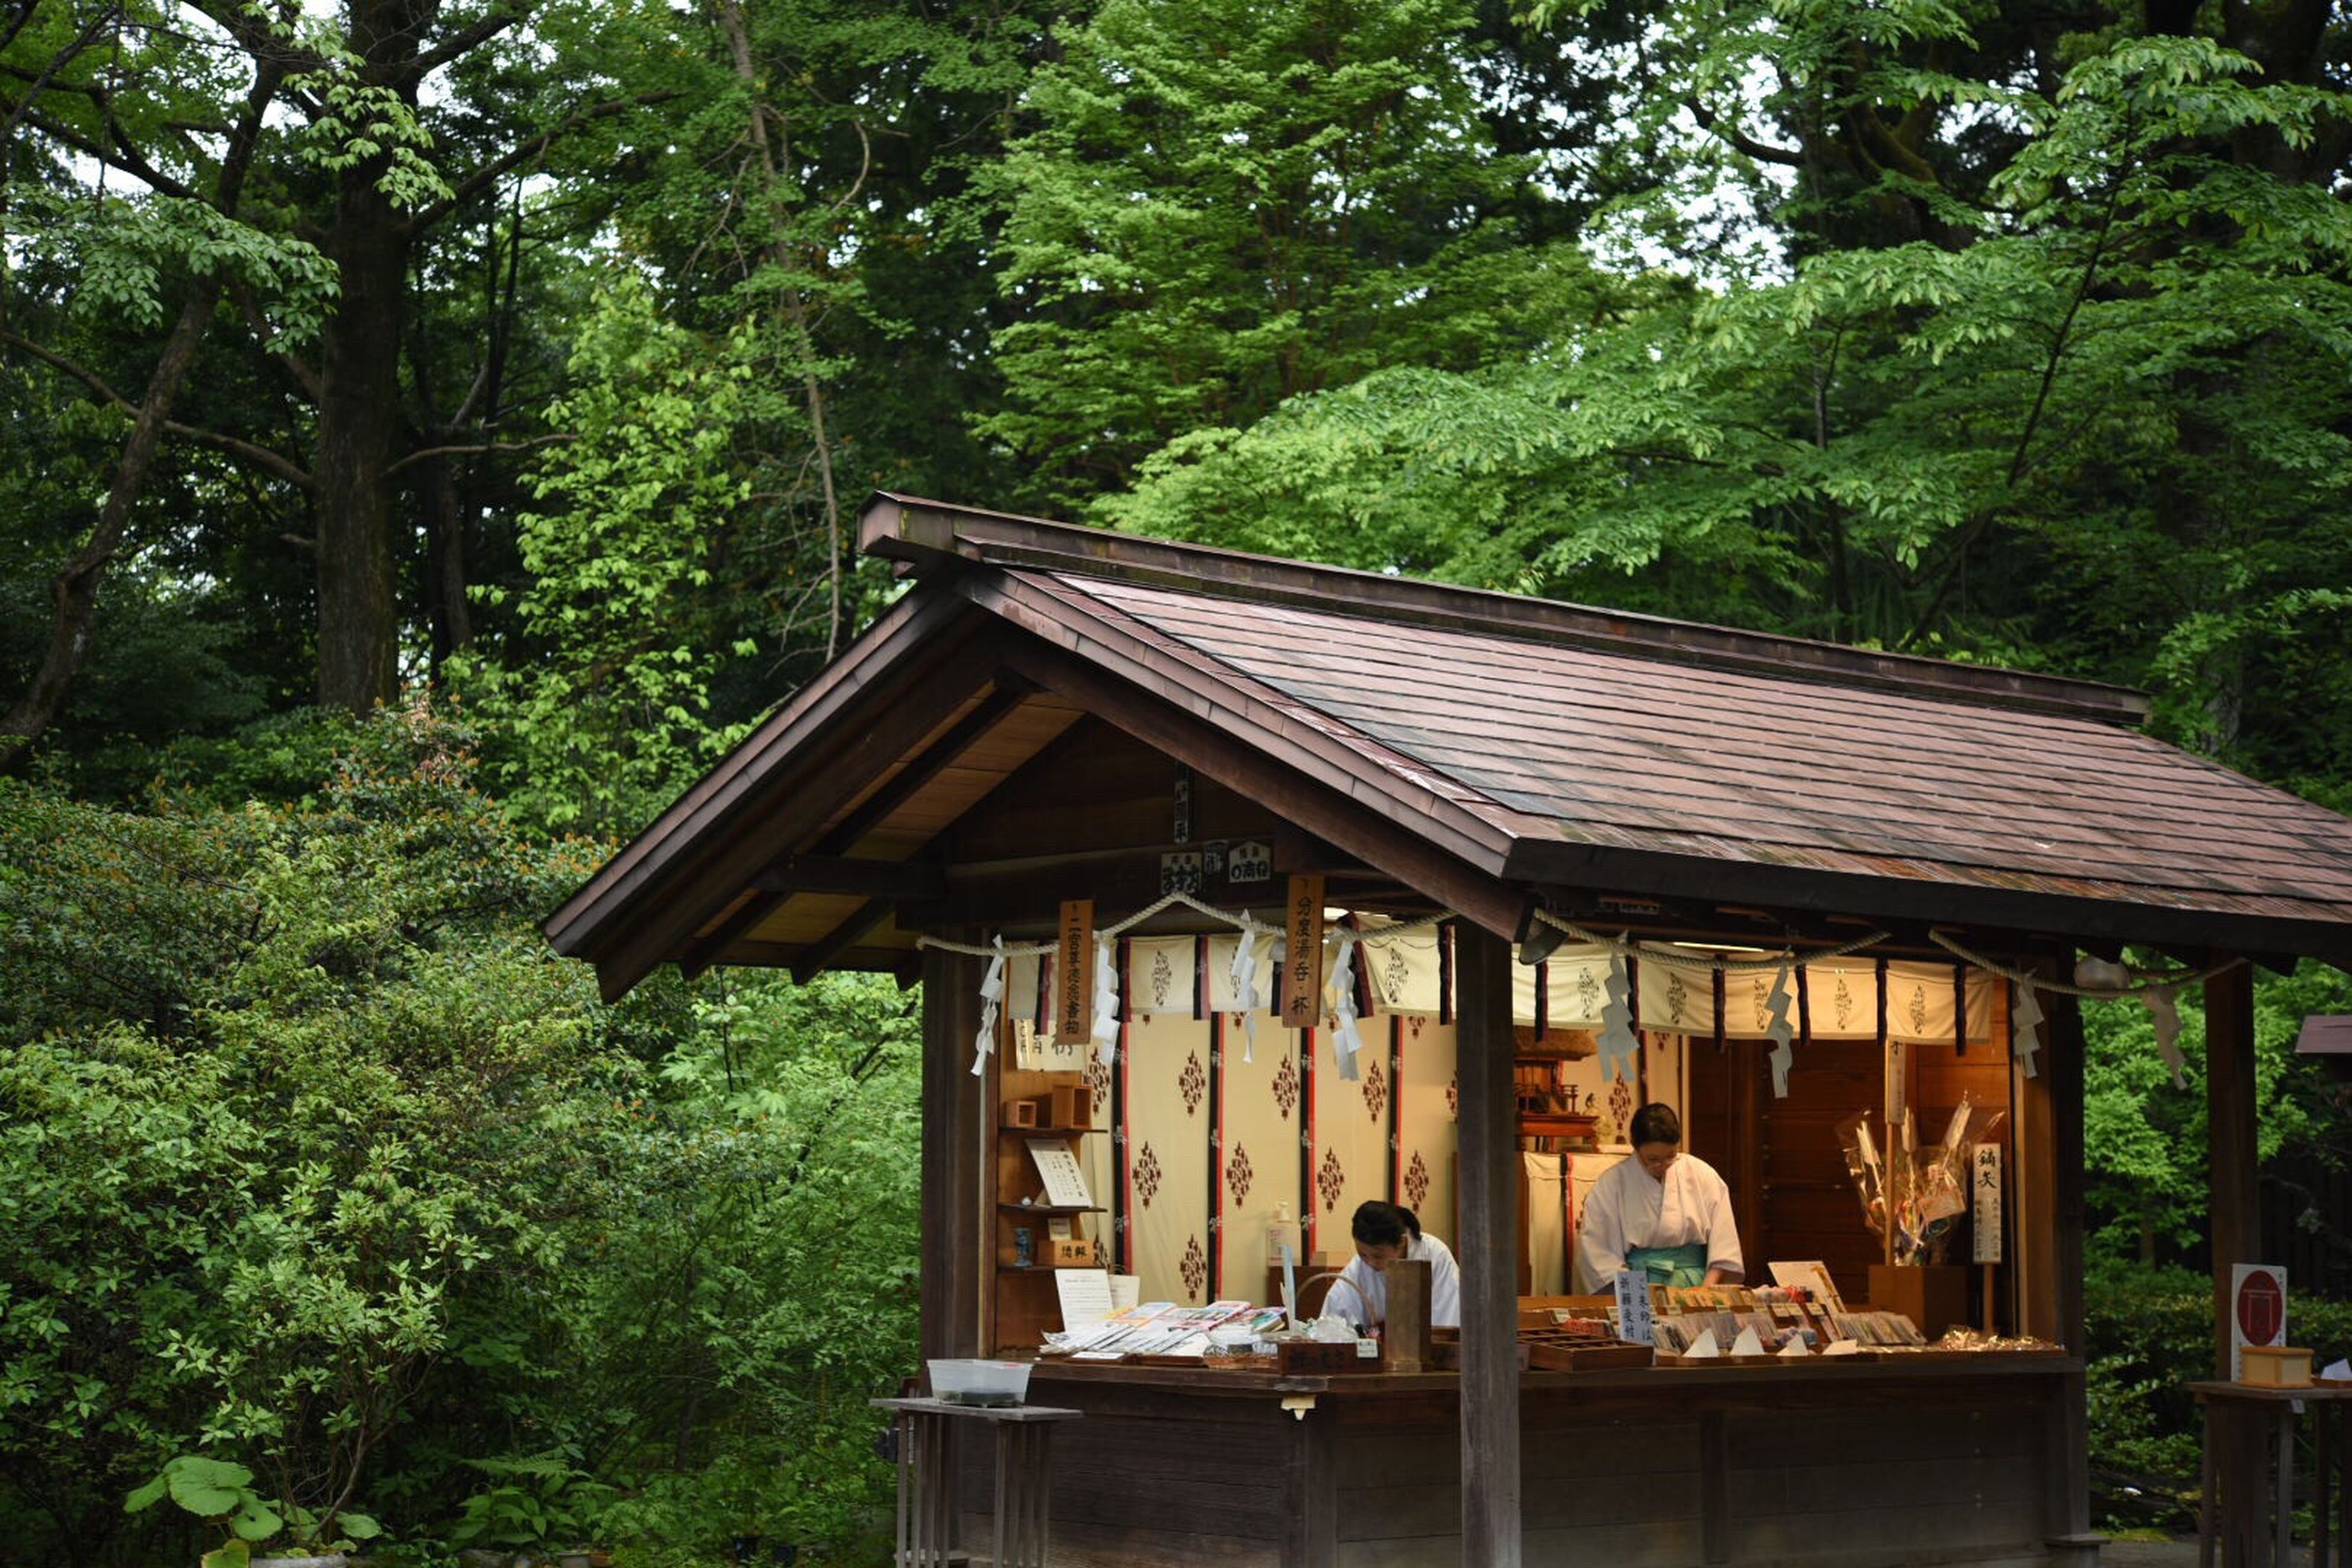 tree, built structure, wood - material, building exterior, architecture, sitting, bench, house, leisure activity, lifestyles, park - man made space, roof, forest, outdoors, men, day, growth, person